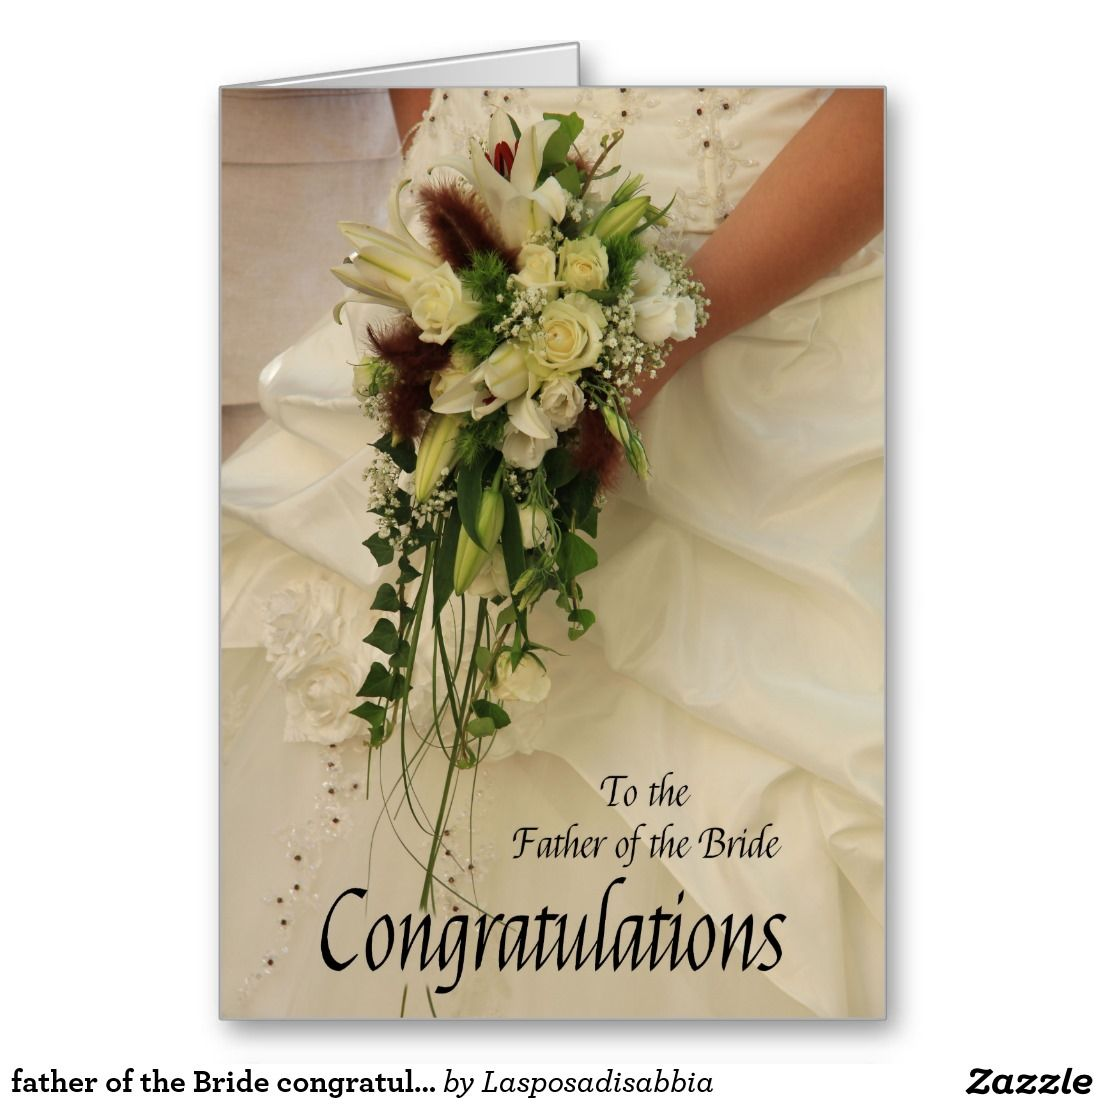 Father of the bride congratulations greeting card stuff sold on father of the bride congratulations greeting card m4hsunfo Images